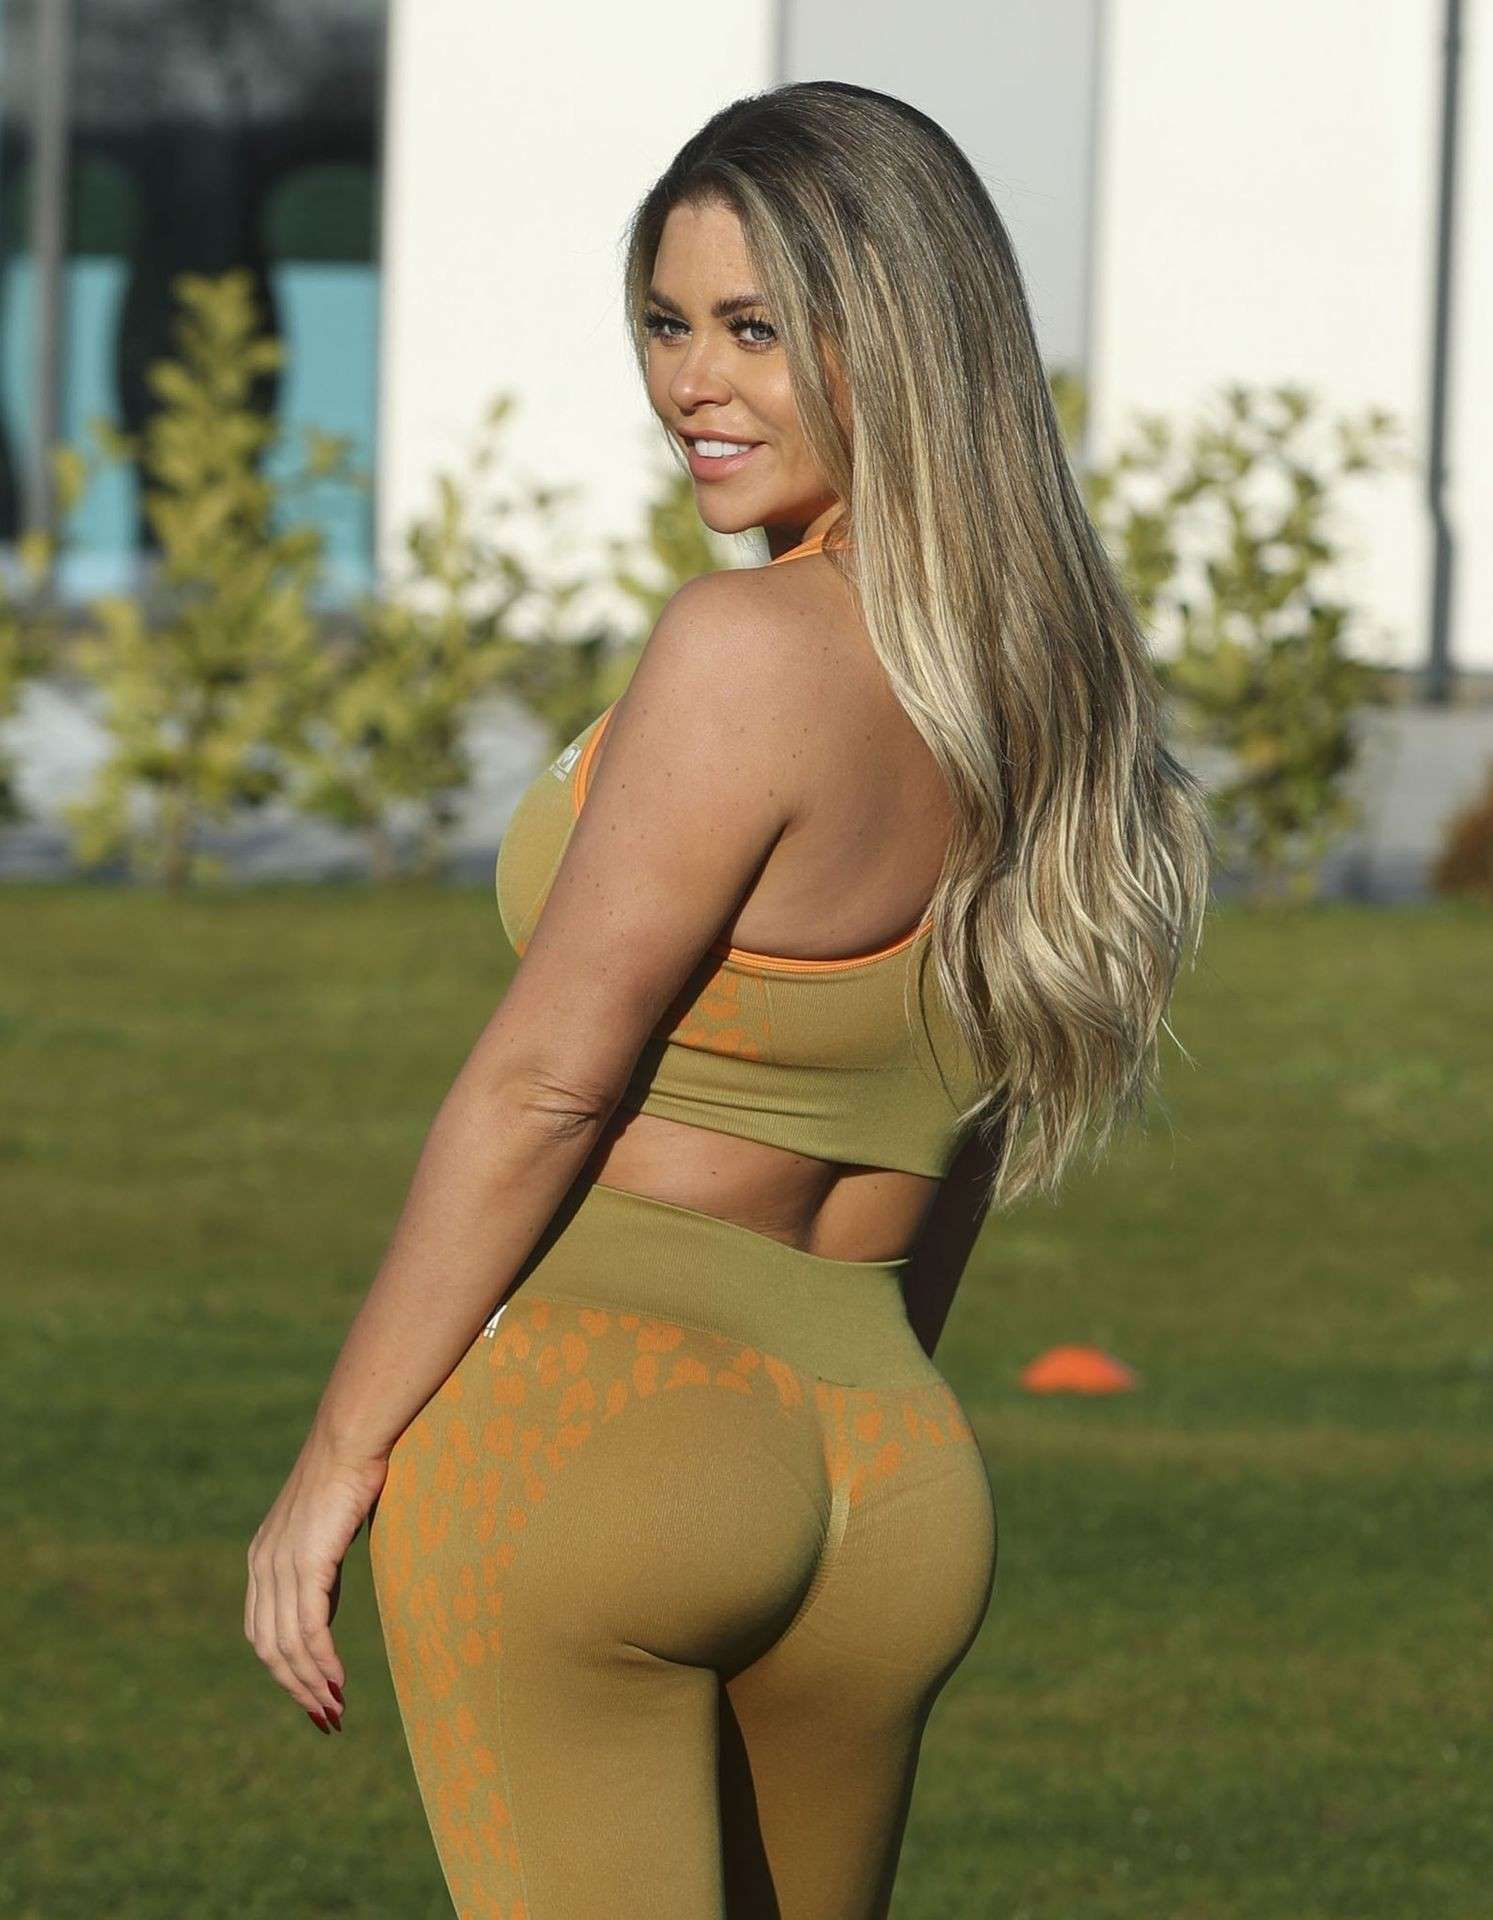 Bianca Gascoigne Ass and Boobs During Workout in Essex